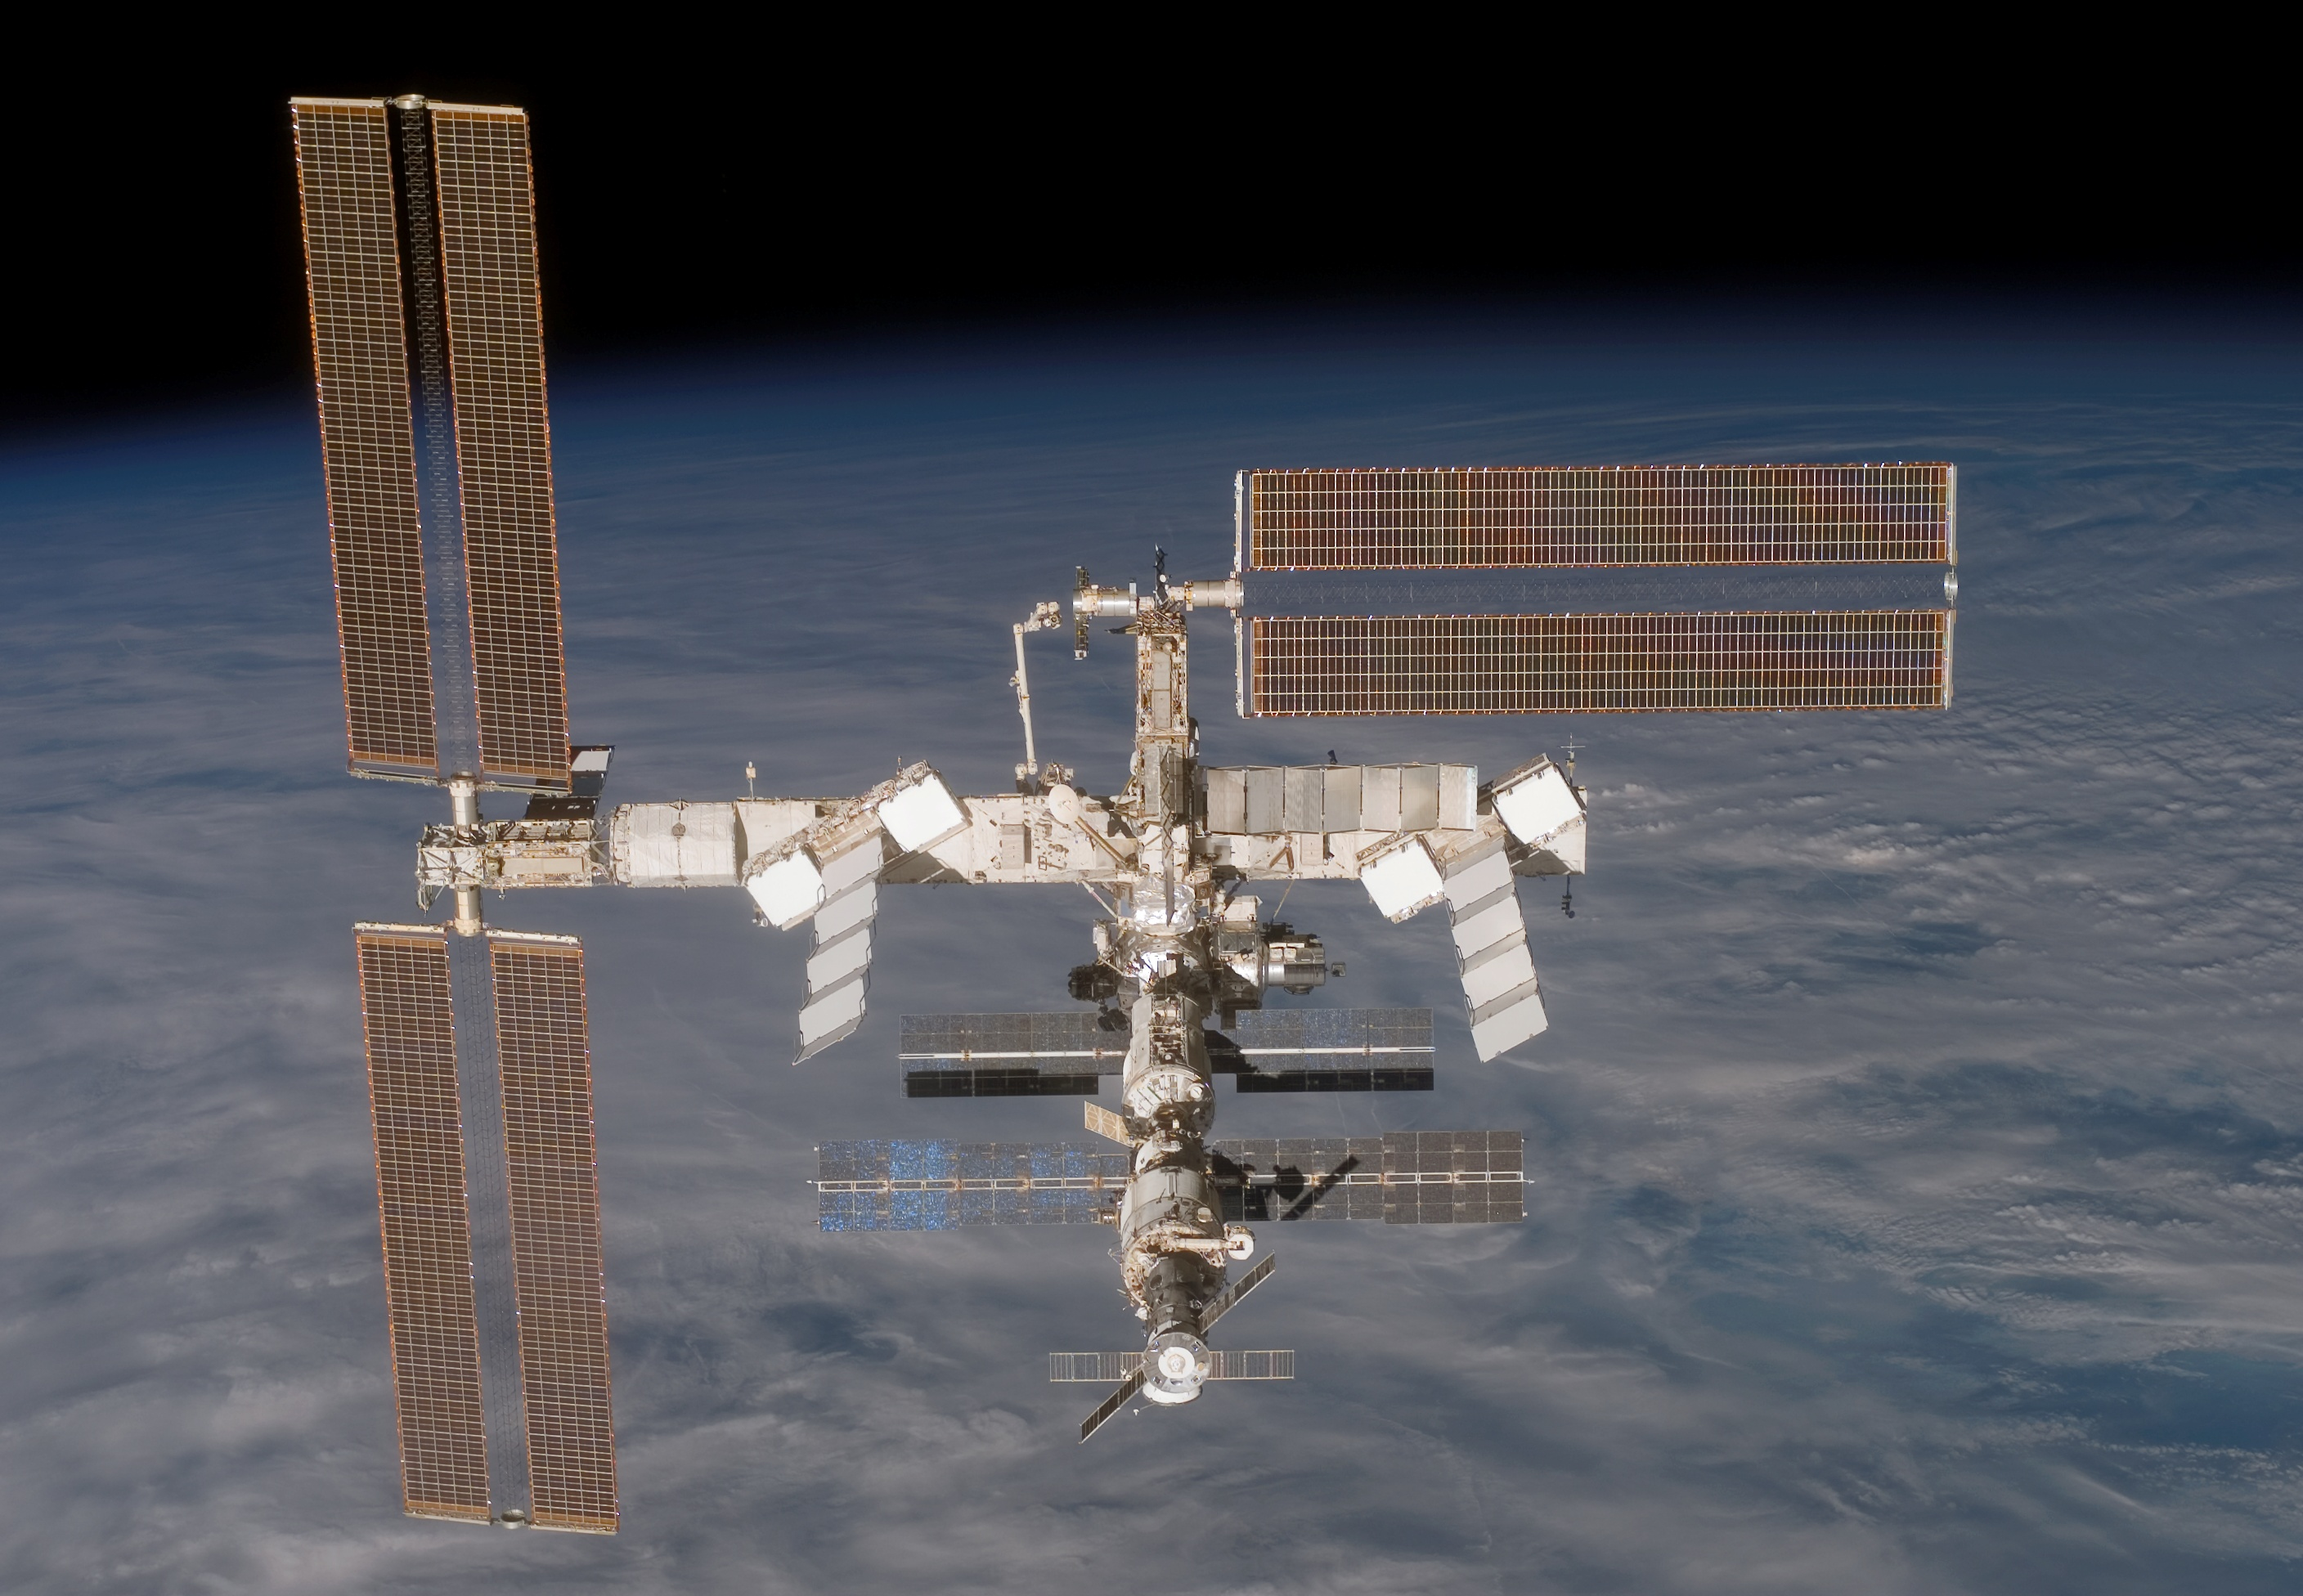 Animation assemblage ISS ISS_after_STS-116_in_December_2006